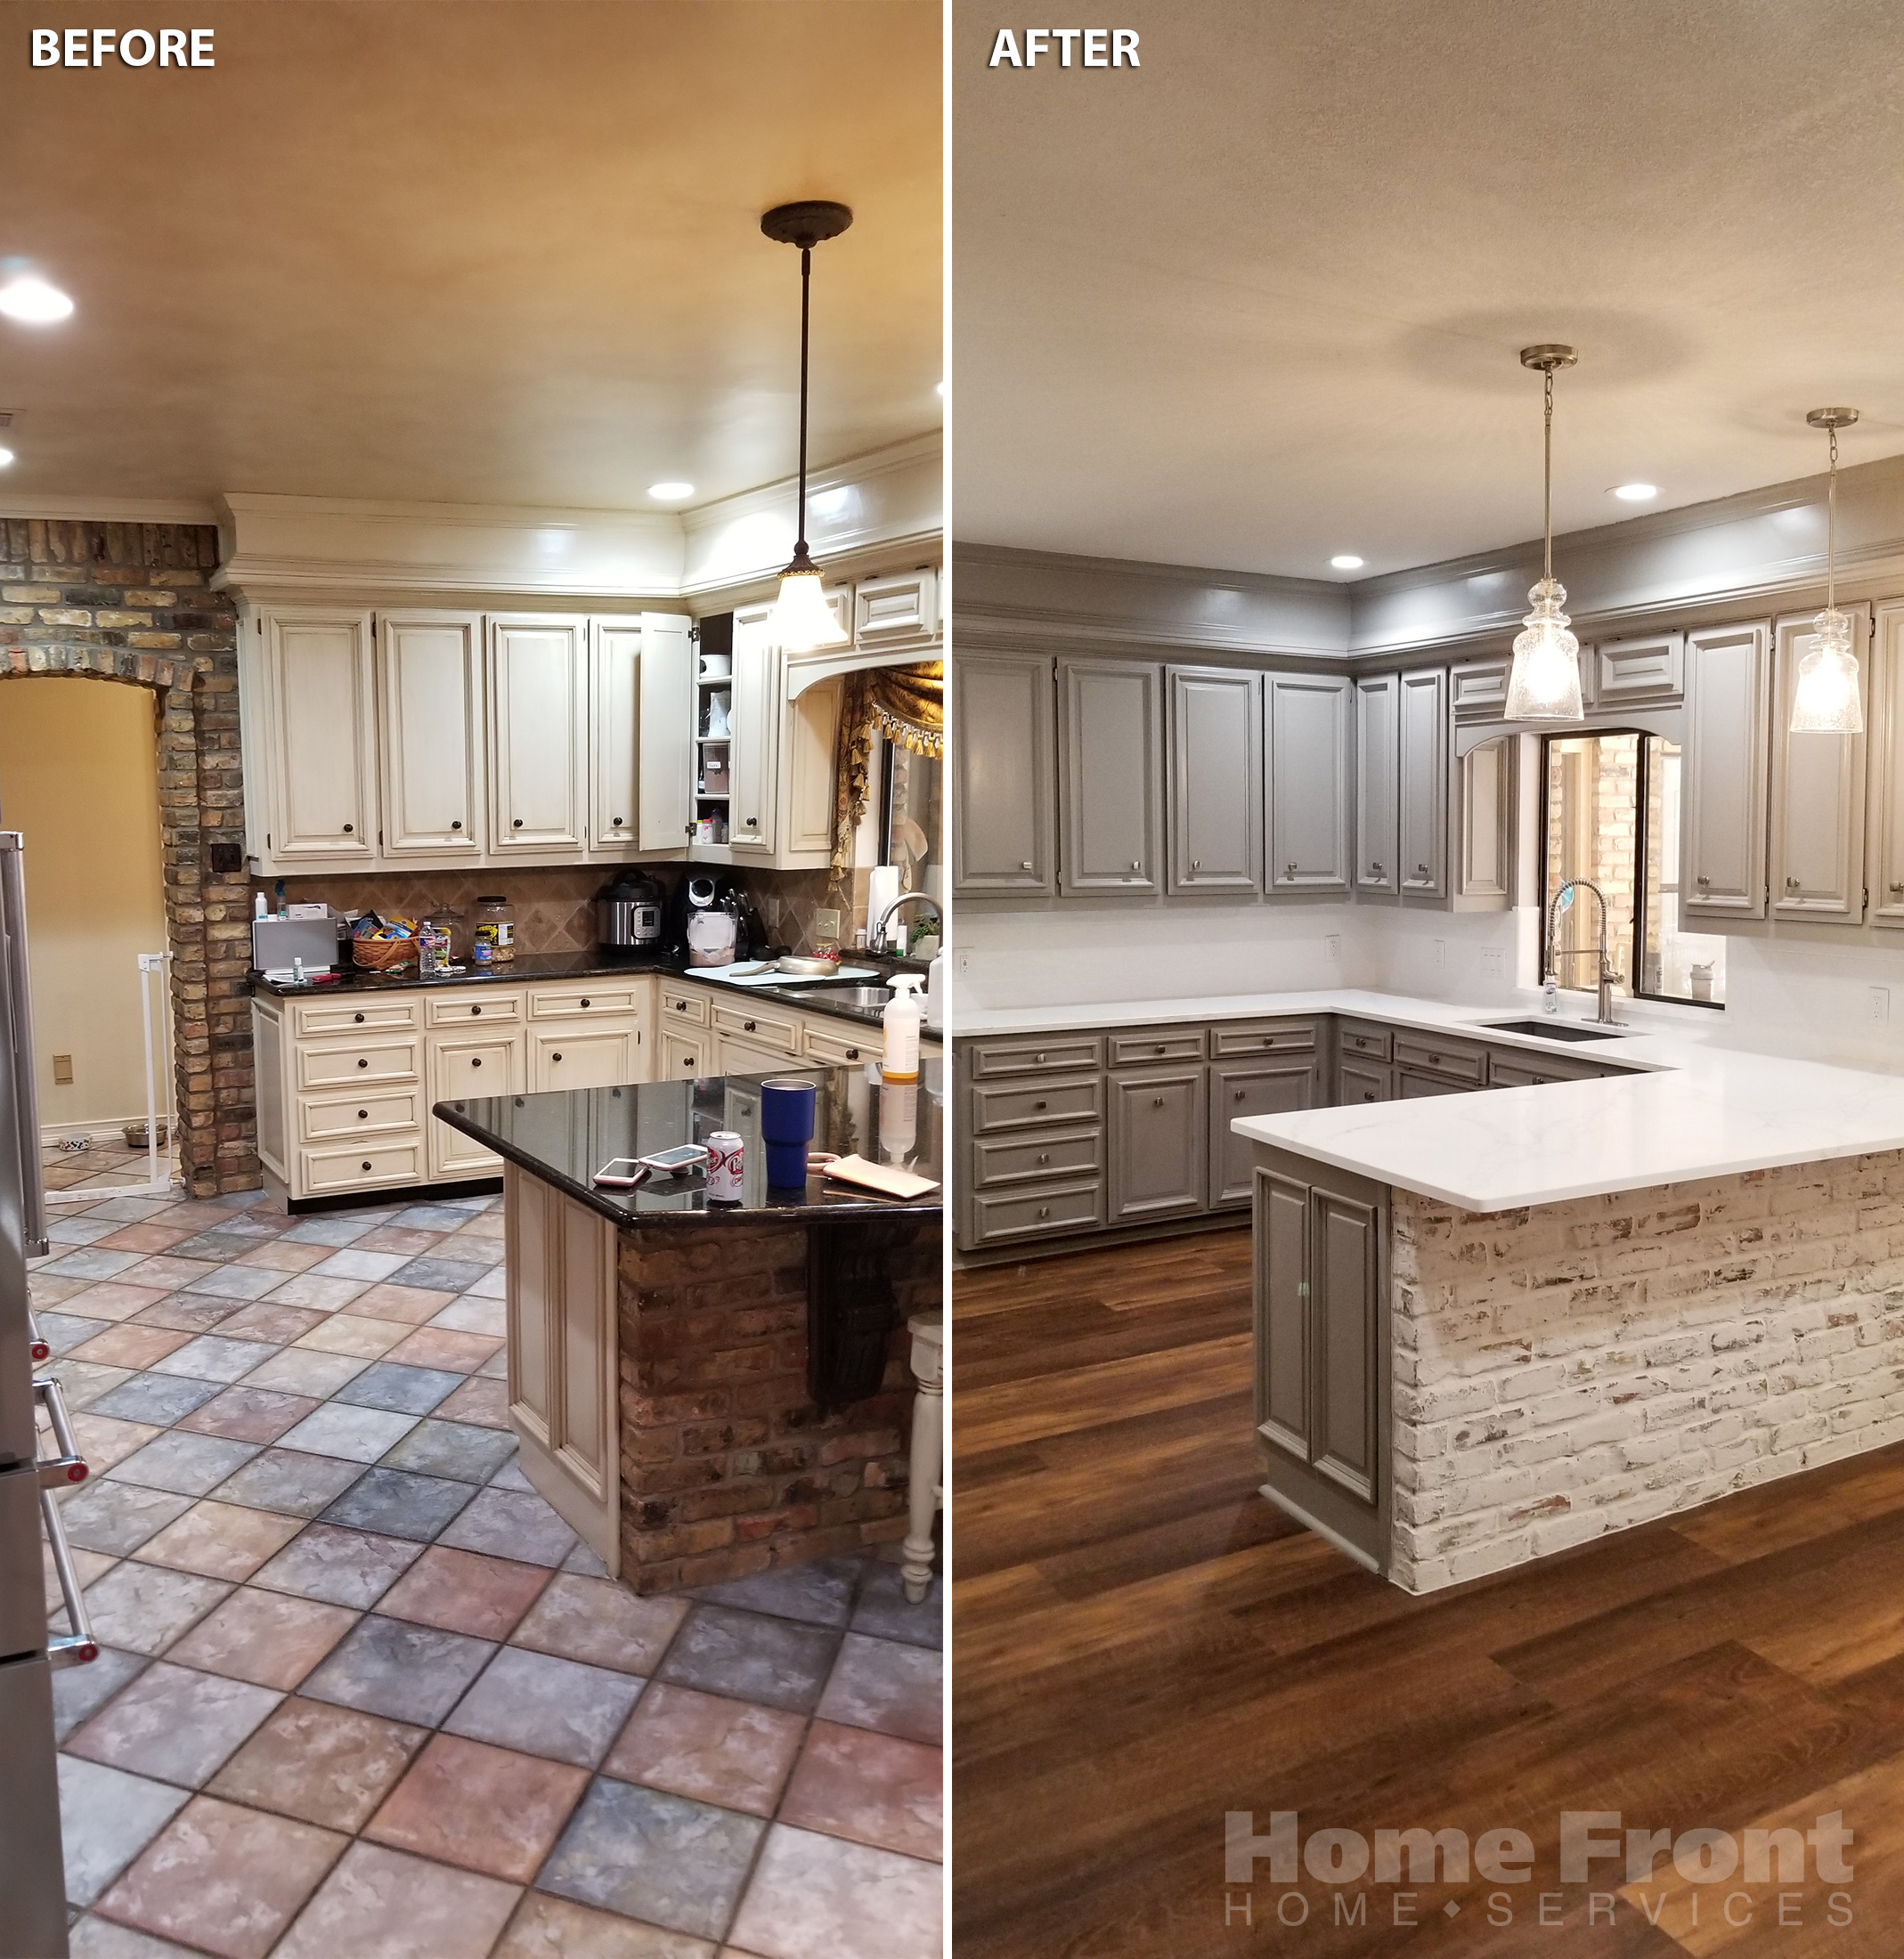 Young,-Cathy-before-after-kitchen